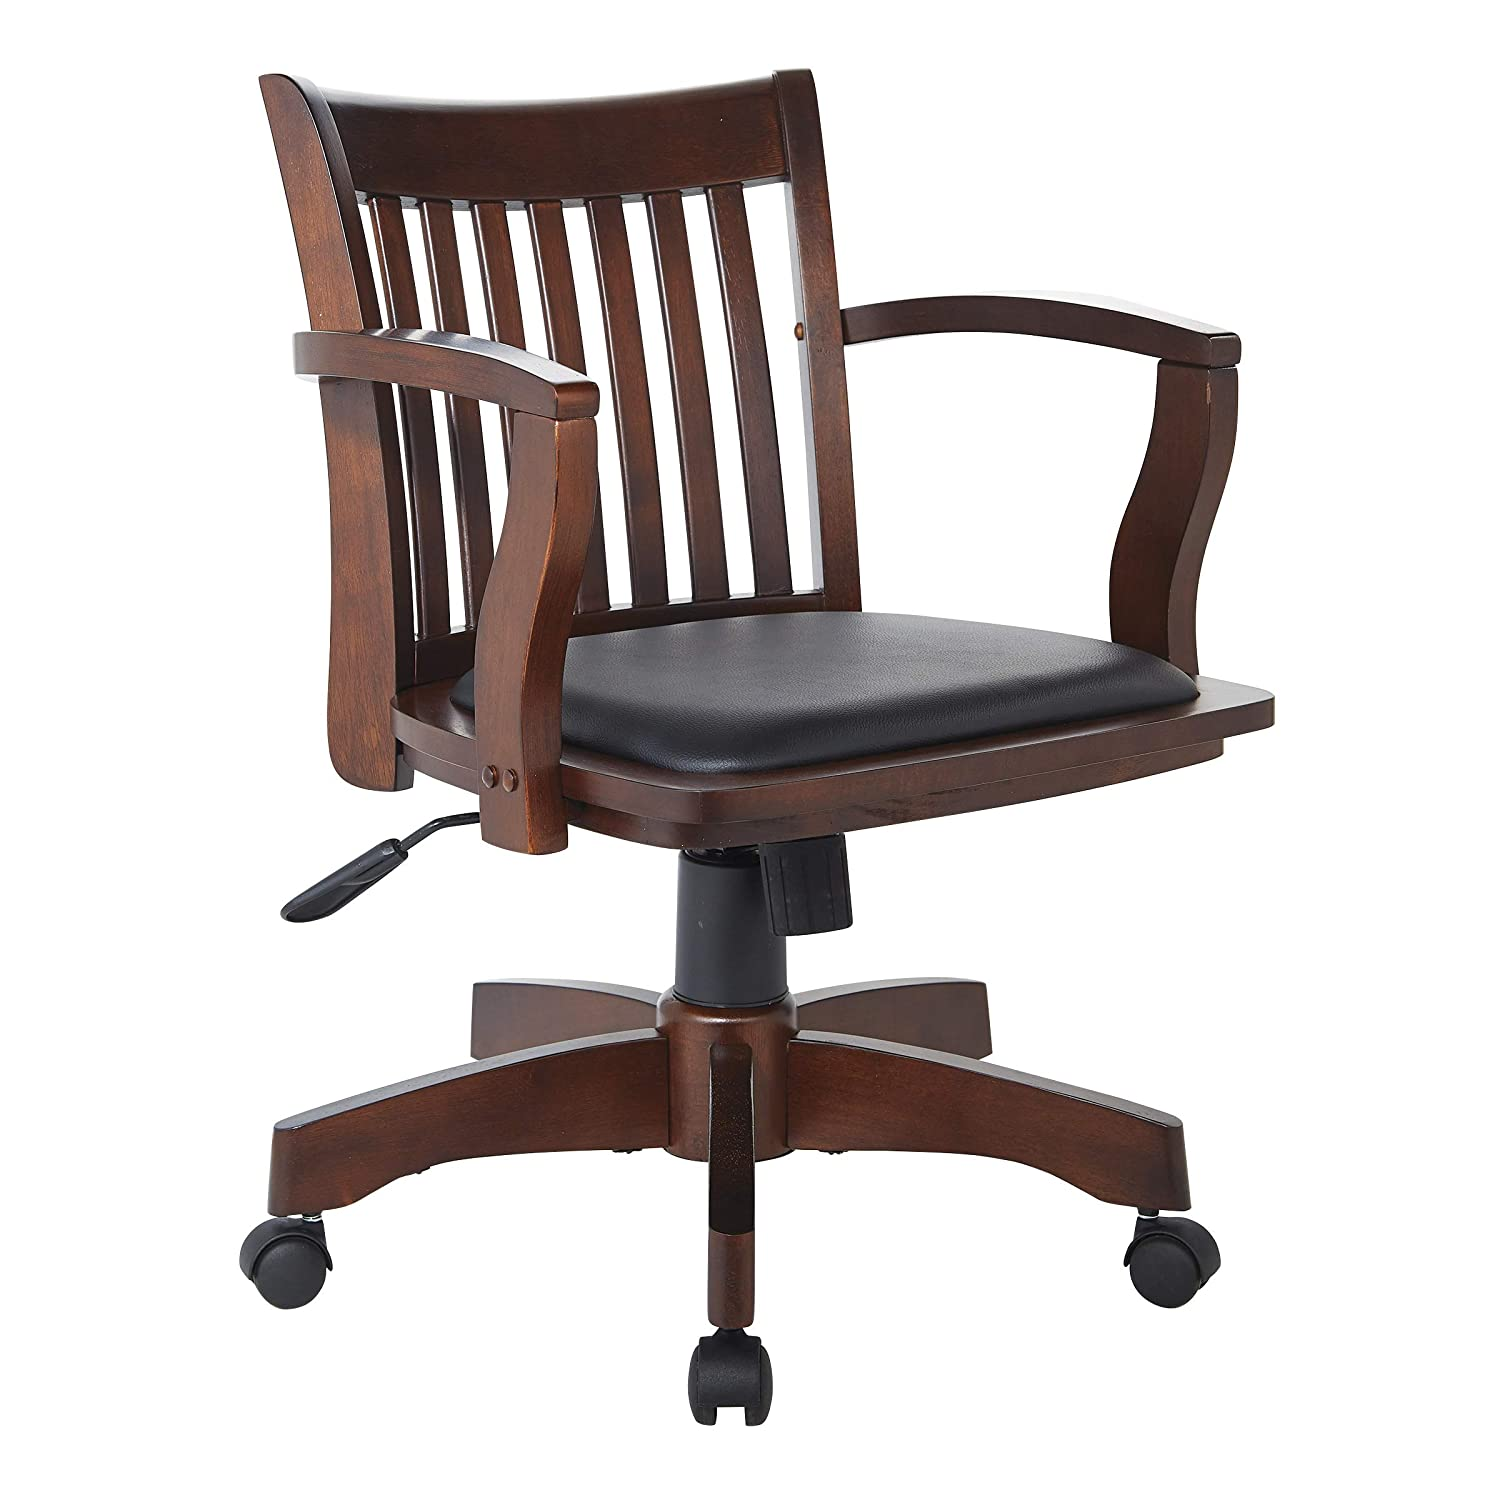 Office Star Deluxe Wood Bankers Desk Chair with Black Vinyl Padded Seat, Espresso